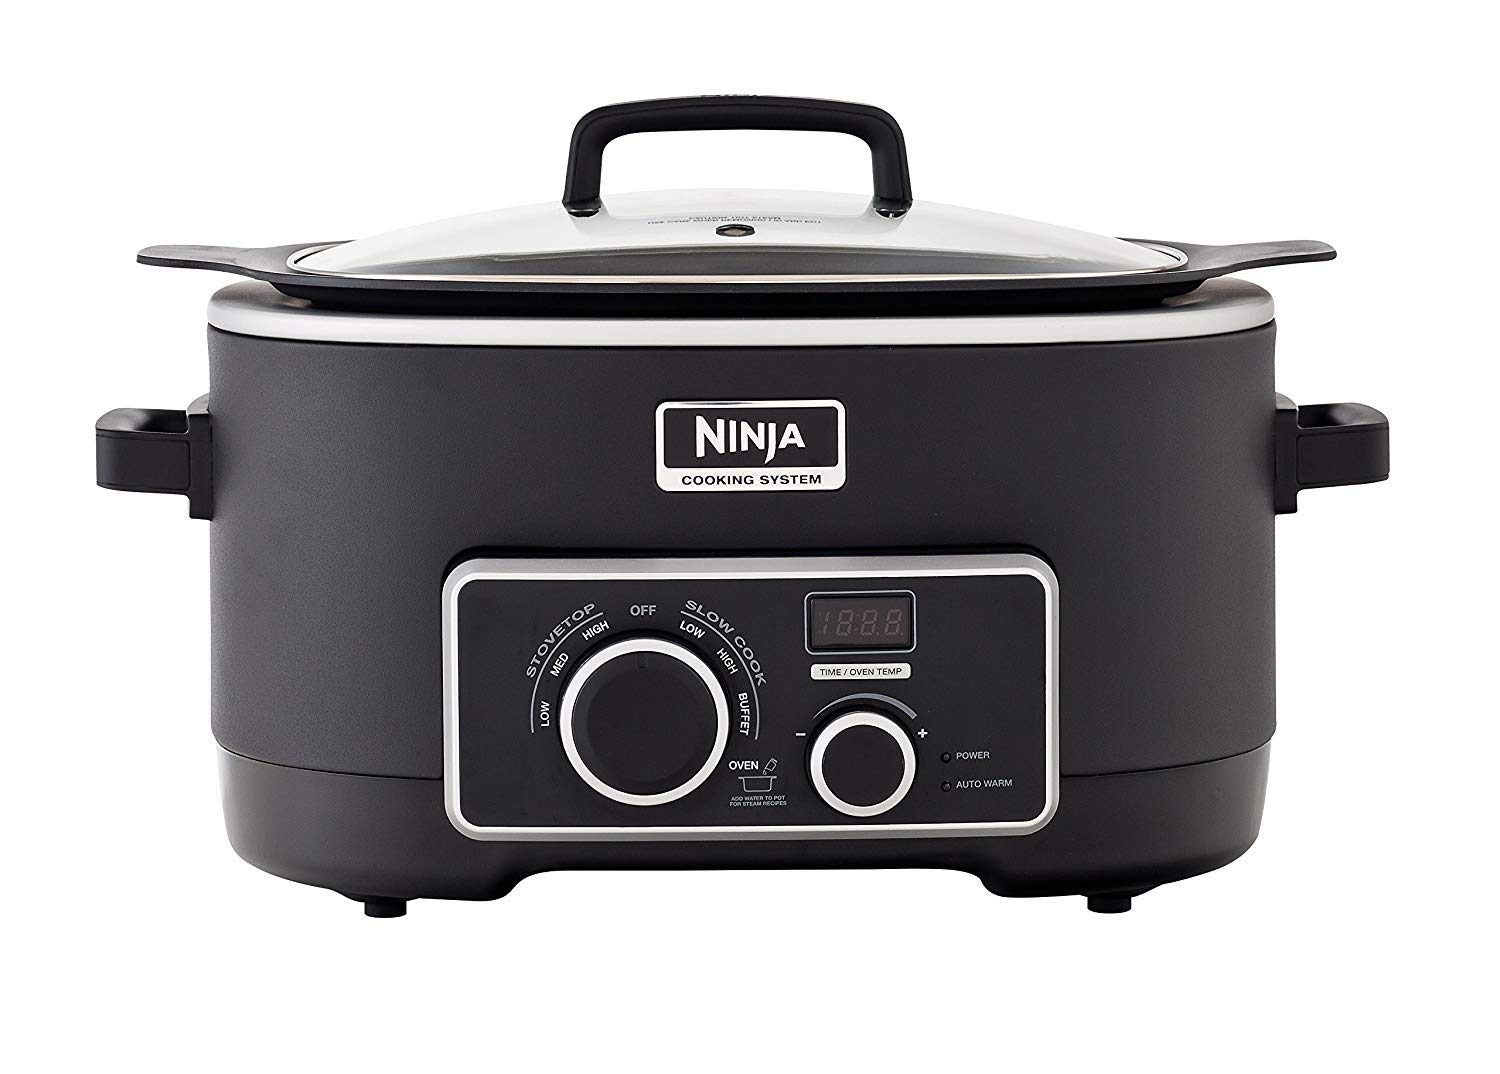 Ninja 3-in-1 Cooking System (MC751)